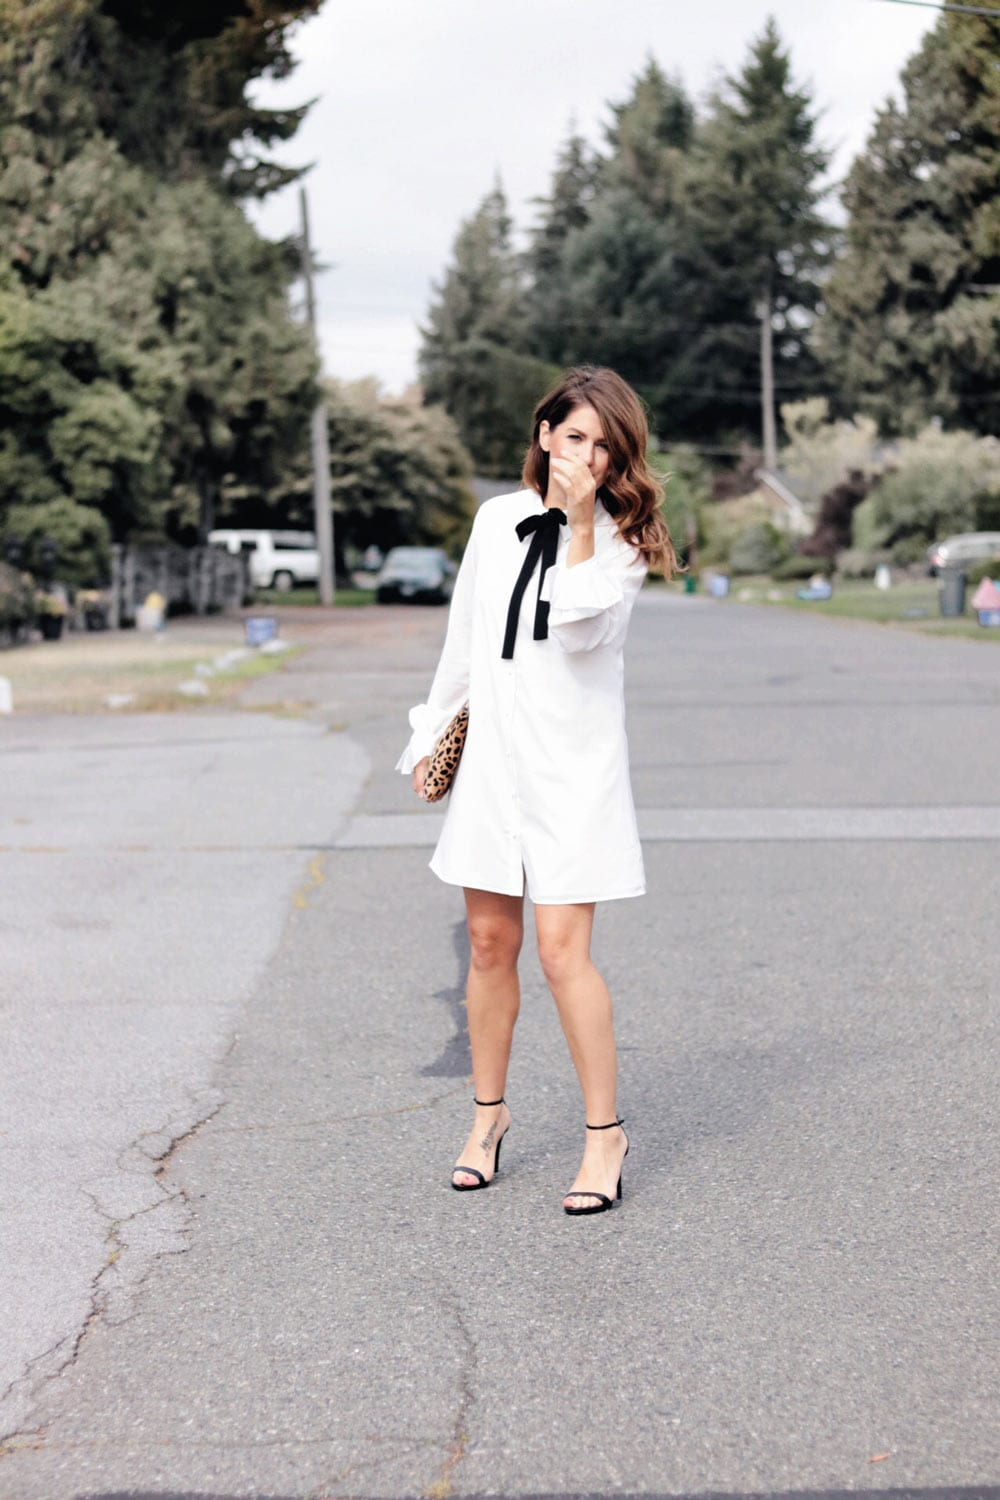 Jillian on set of Love It Or List it wearing white button up Nordstrom dress